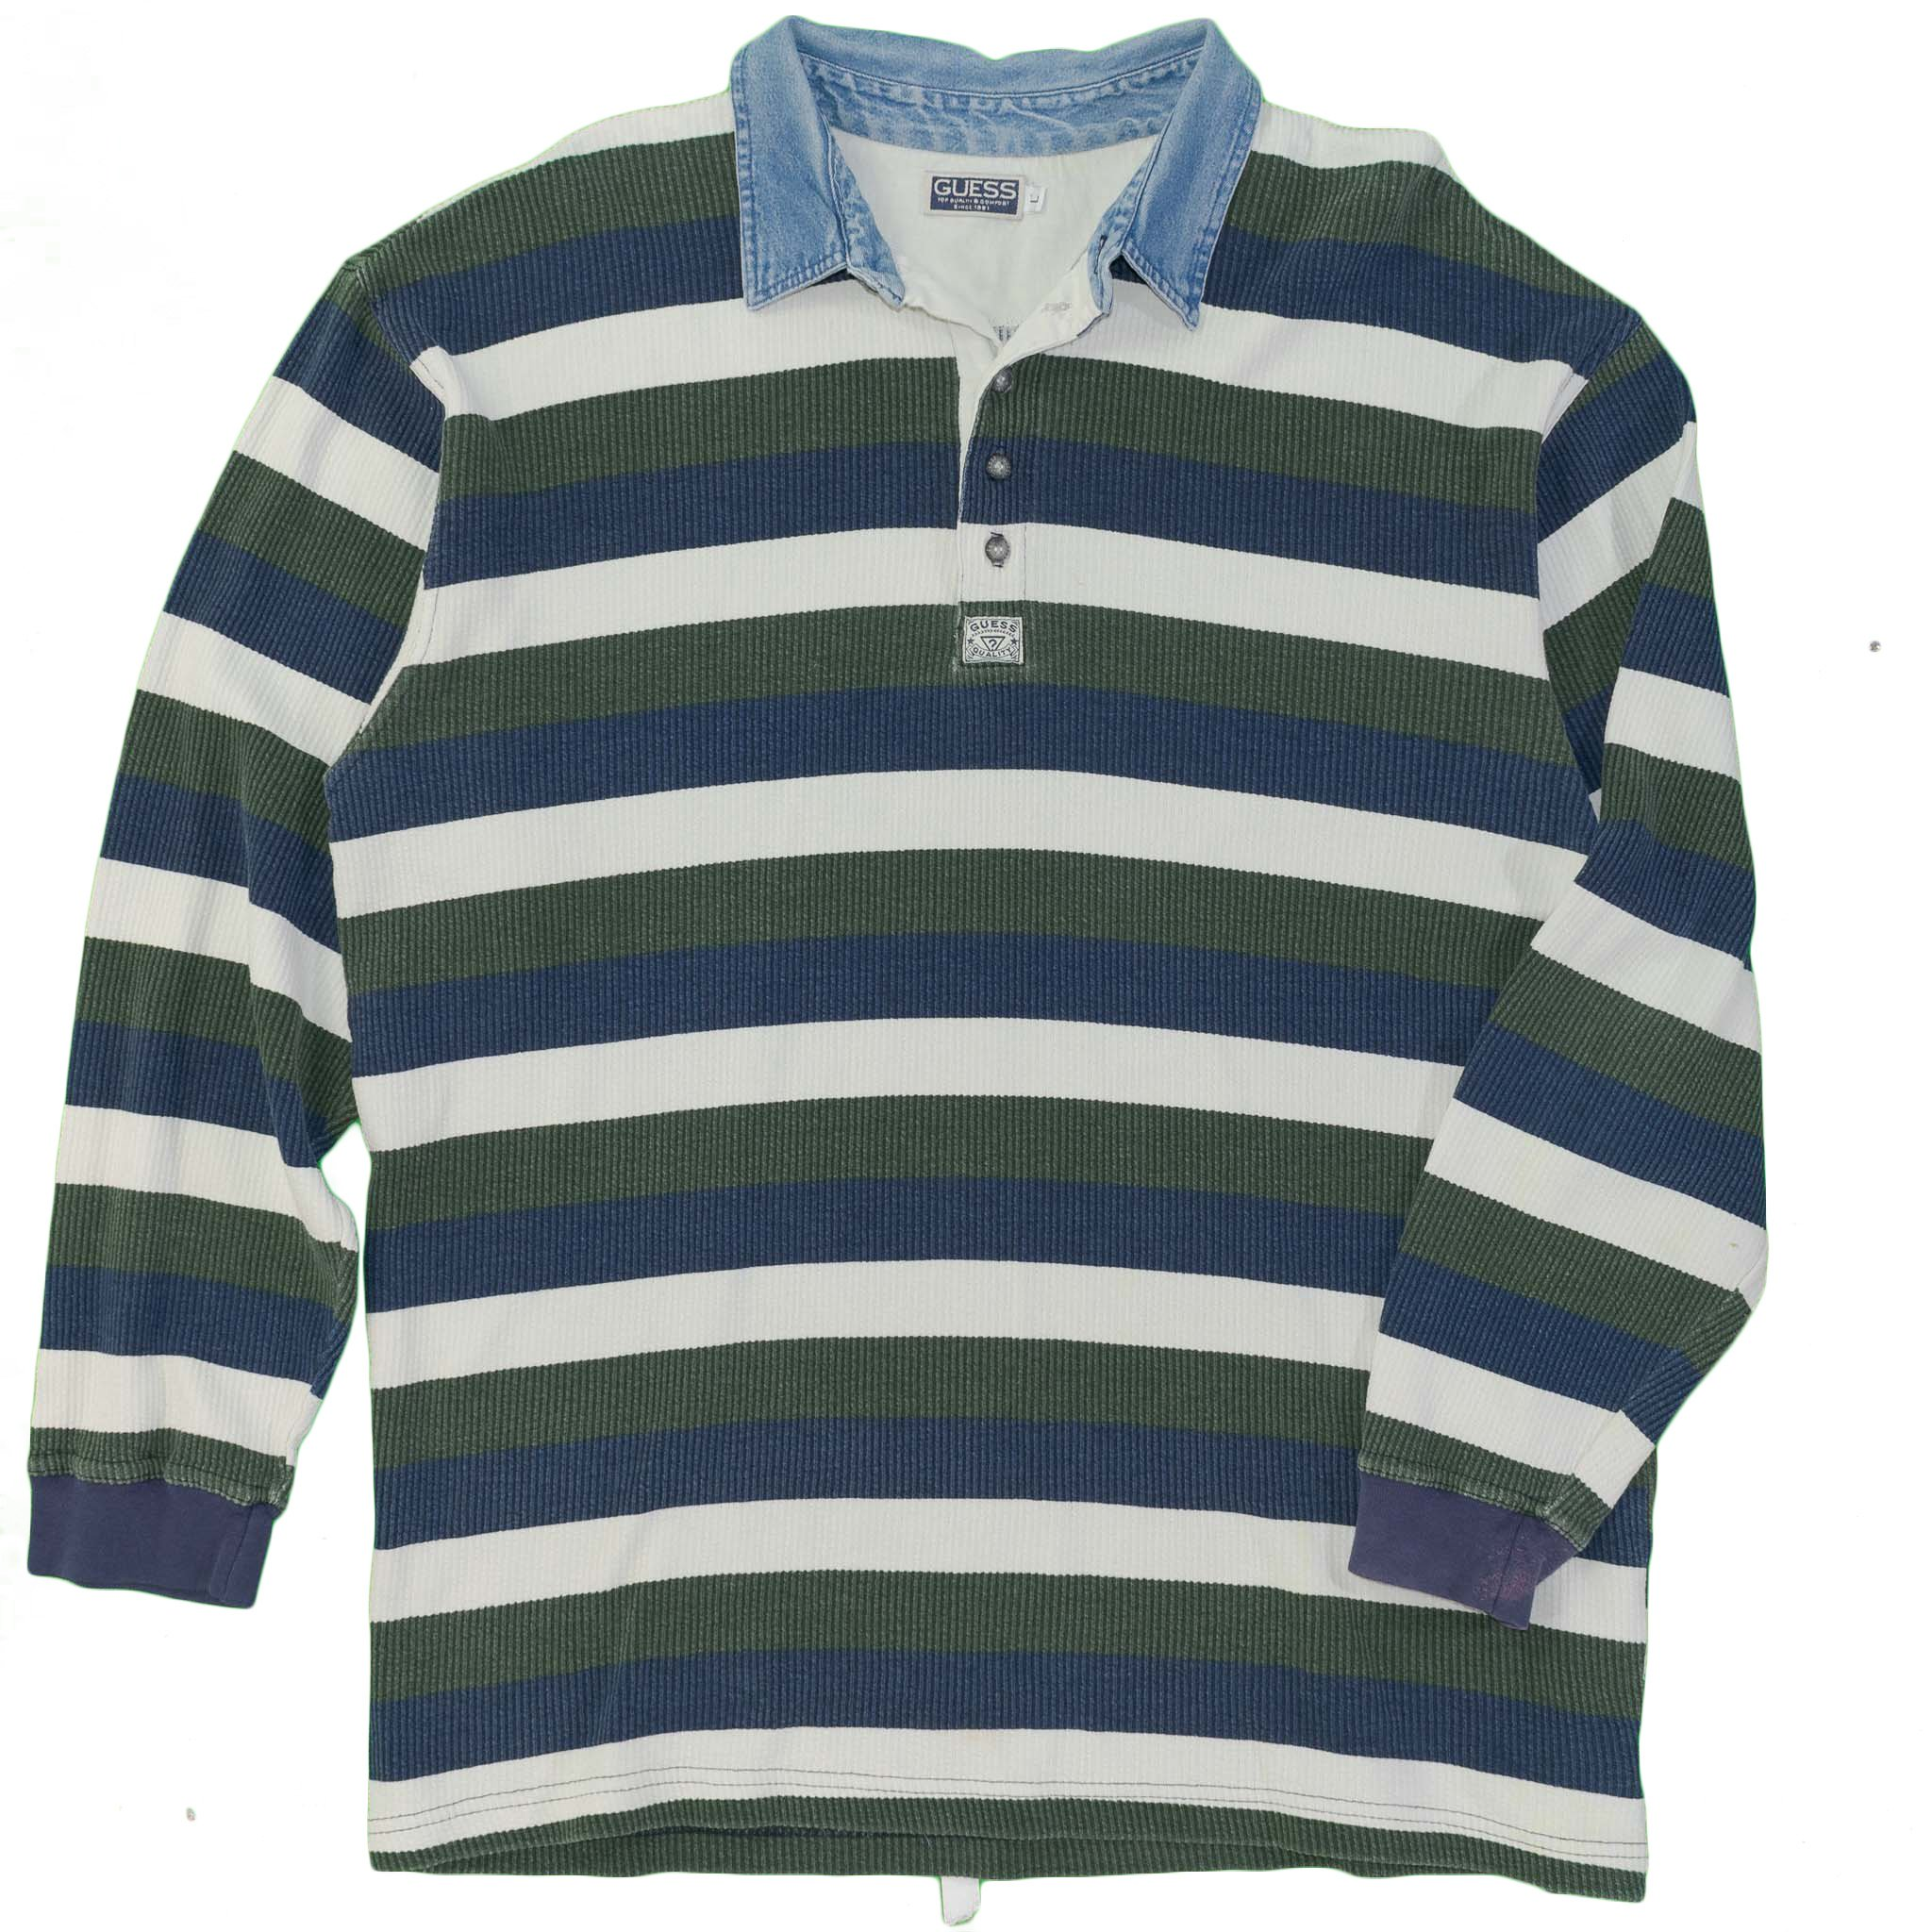 NEW MENS POLO SHIRT STRIPED UNISEX SHORT SLEEVE CASUAL WORK T SHIRT SIZE M 2XL